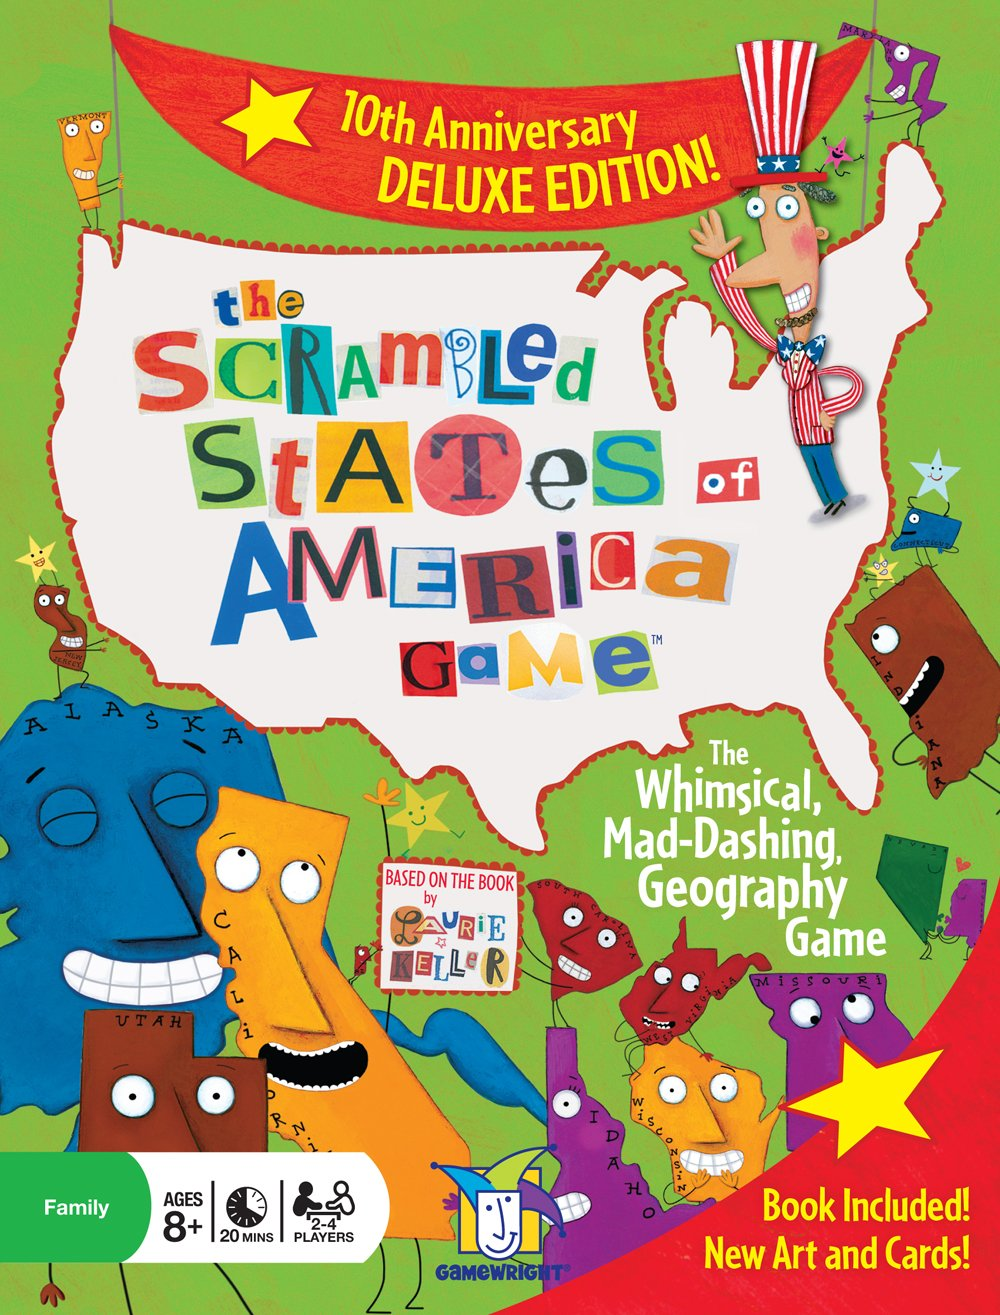 The Scrambled States of America Geography Game Tenth Anniversary Deluxe Edition